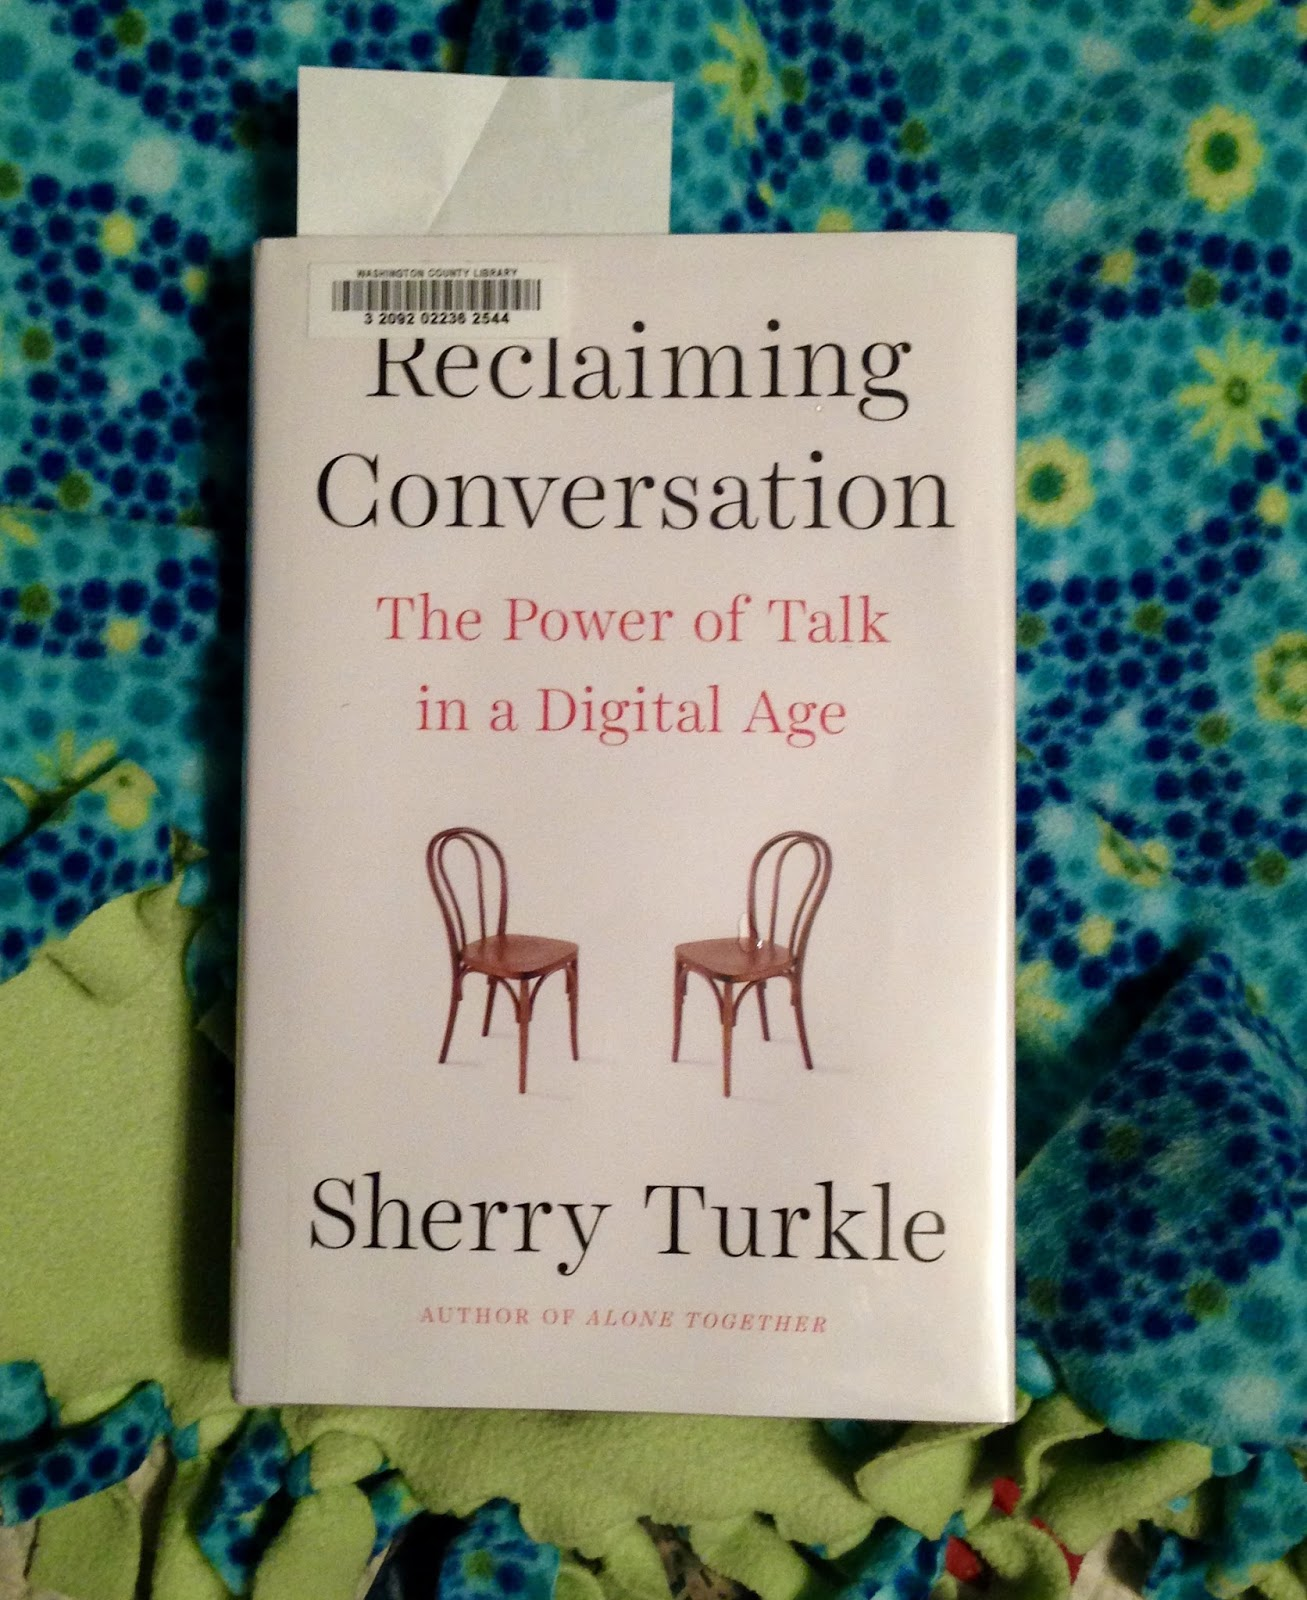 can you hear me now sherry turkle thesis Can you hear me now can you hear me now , written by sherry turkle, was published in forbes magazine in 2007 turkle's main argument is that the technology of today, which is intended to connect people, is actually making them estranged not only to others but also to themselves.